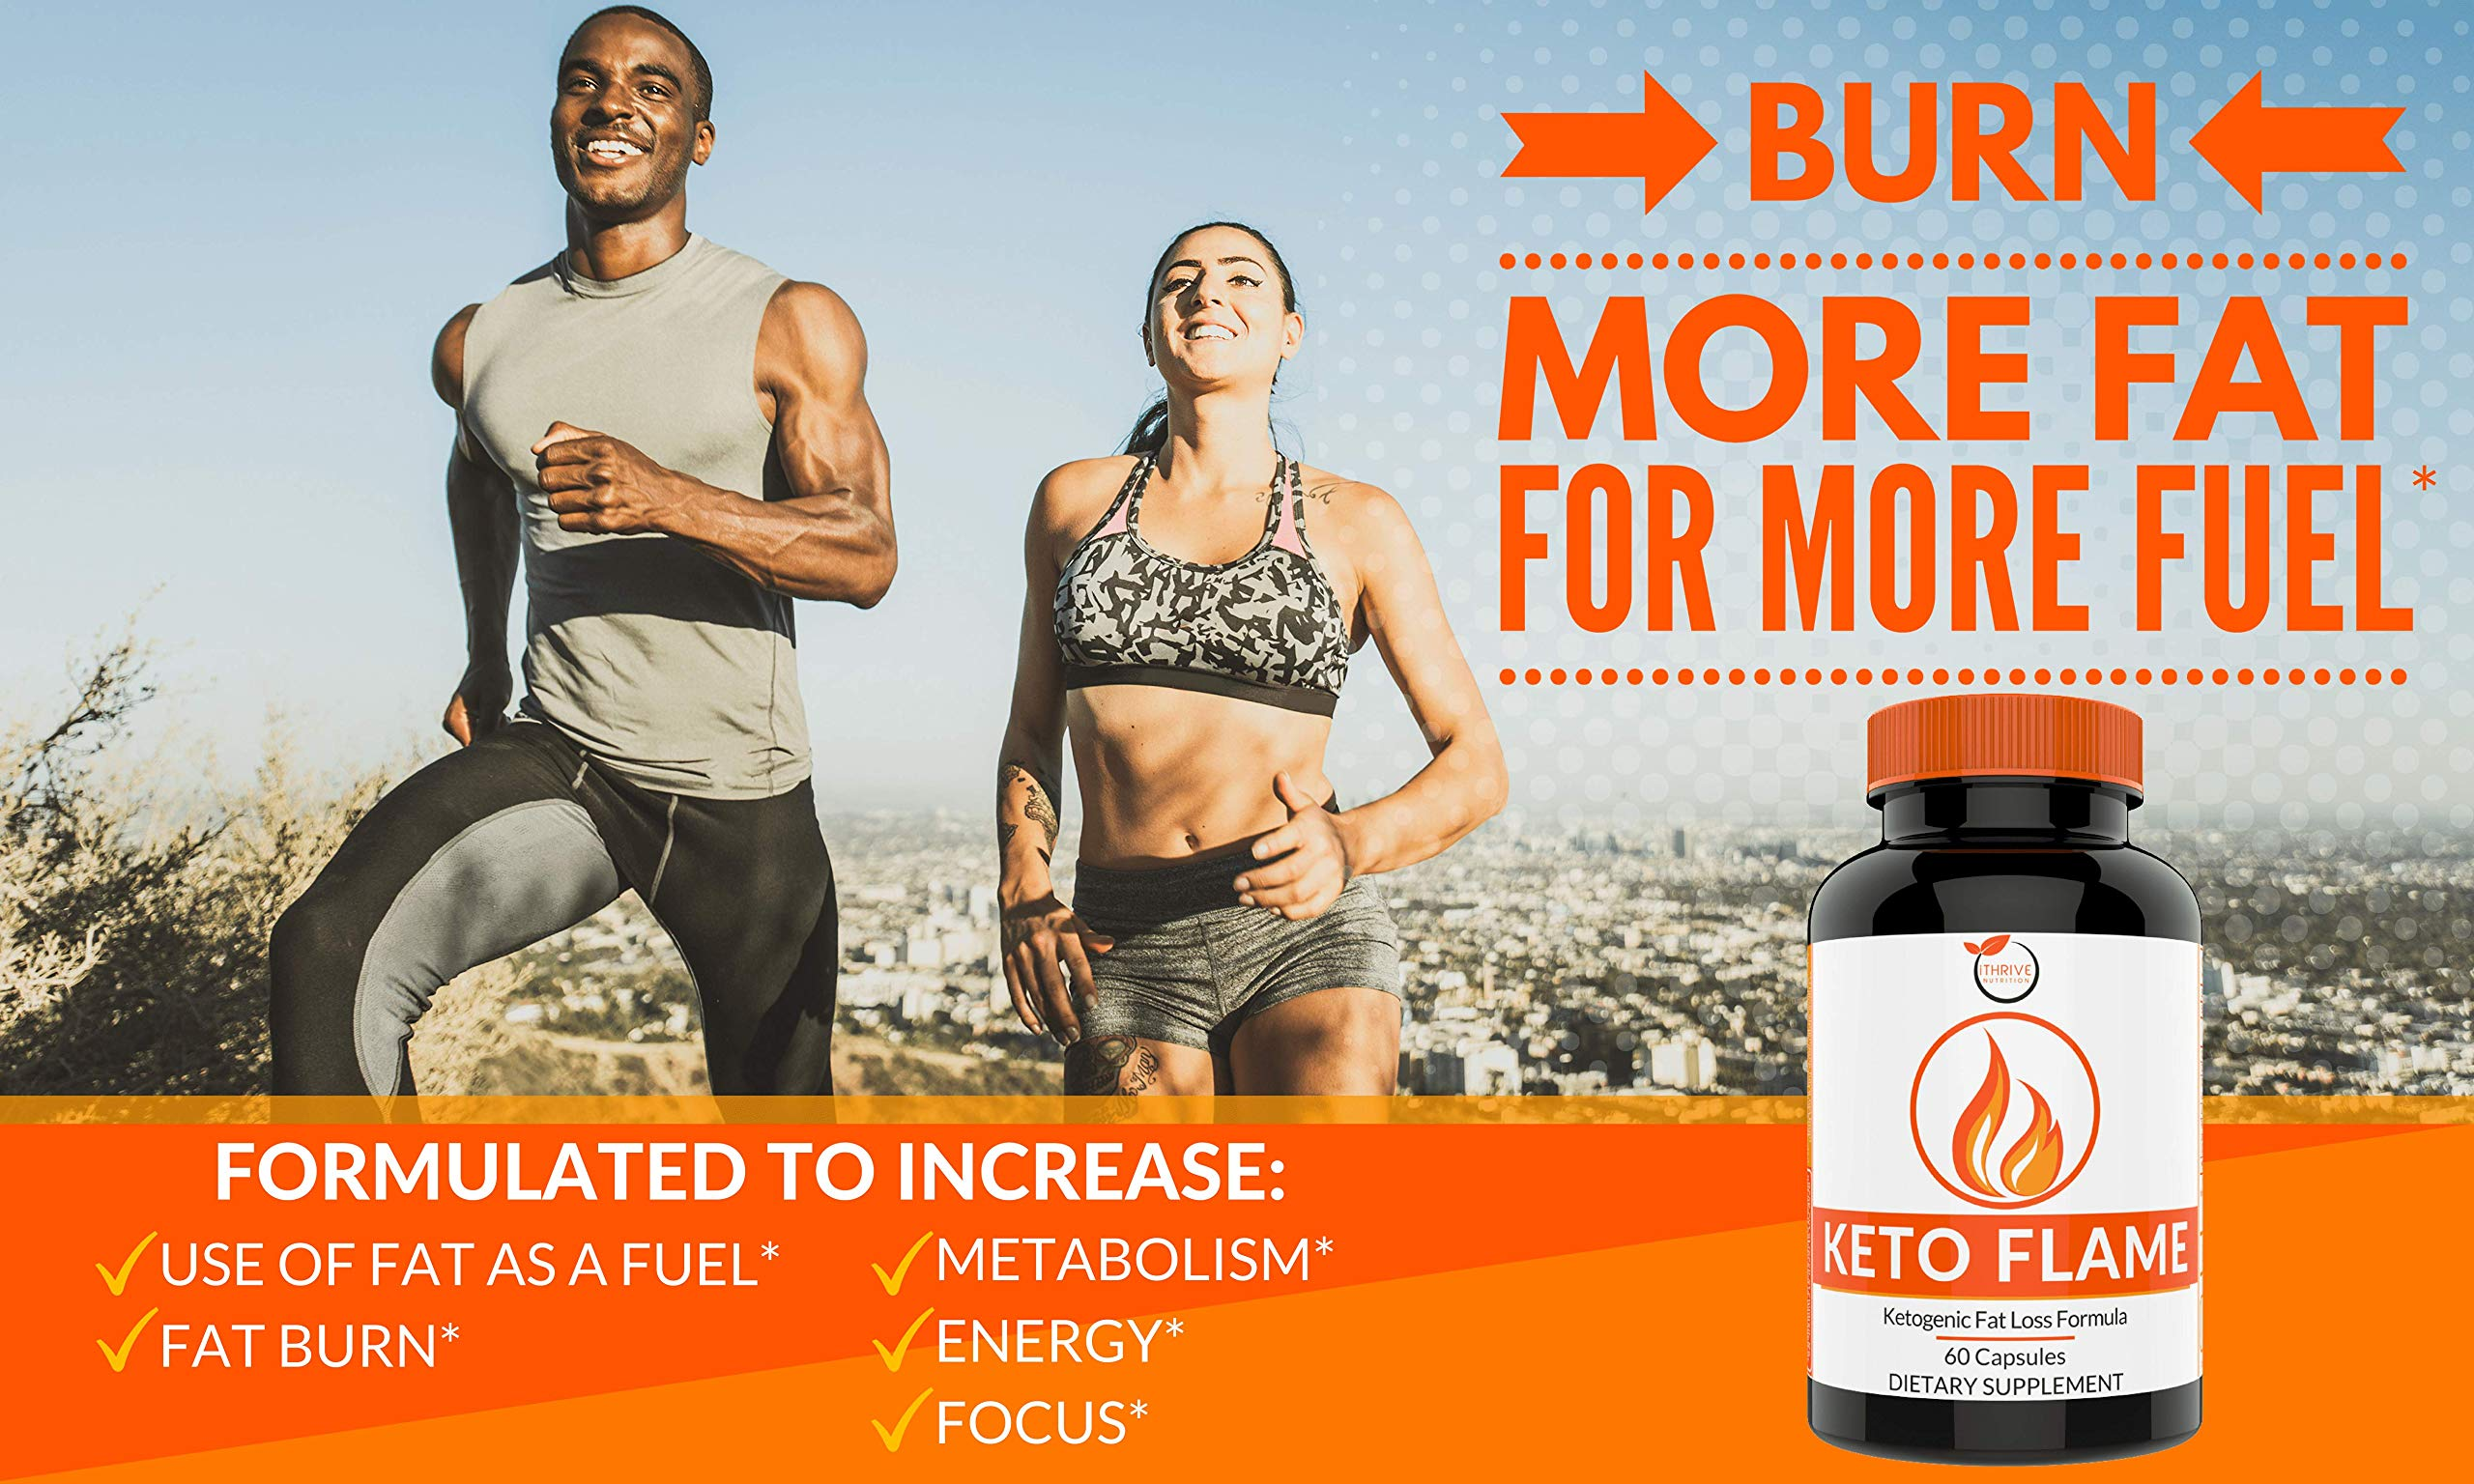 Keto Flame Pills   Shark Tank® [ACTVIE 2020] More Fat For More Fuel!